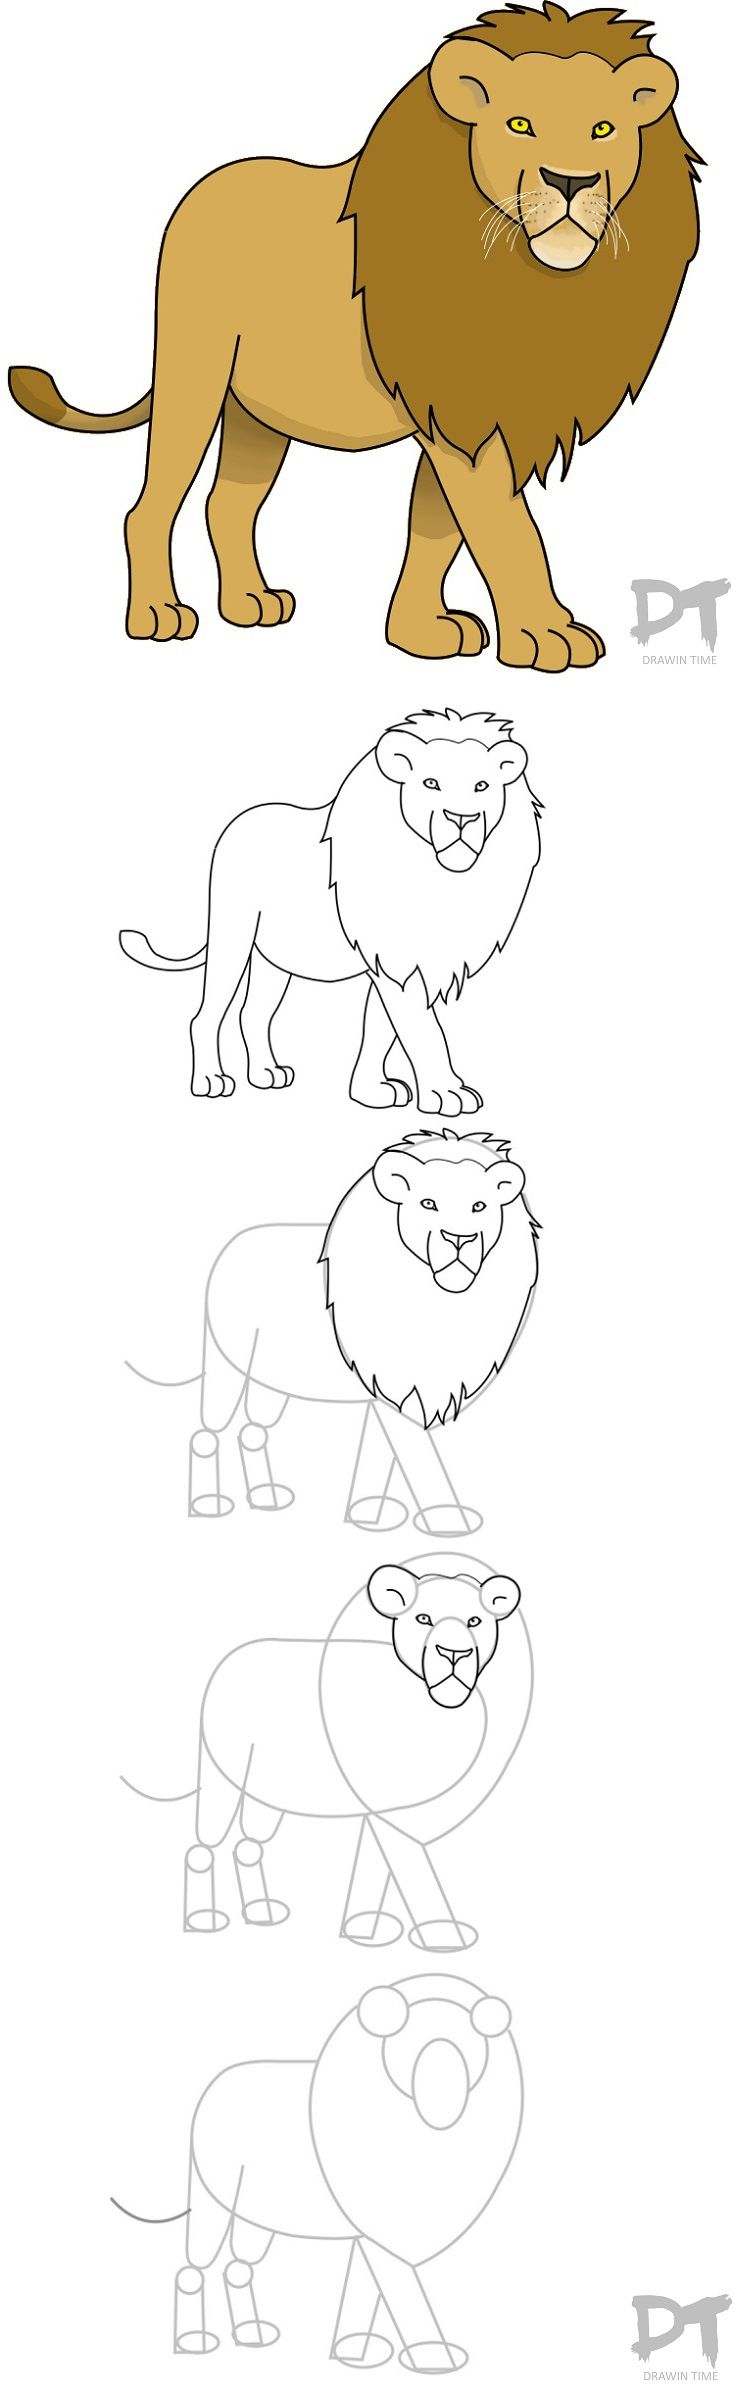 Tutorial: How to draw a Lion in 16 EASY steps  http://drawintime.com/how-to-draw-a-lion/